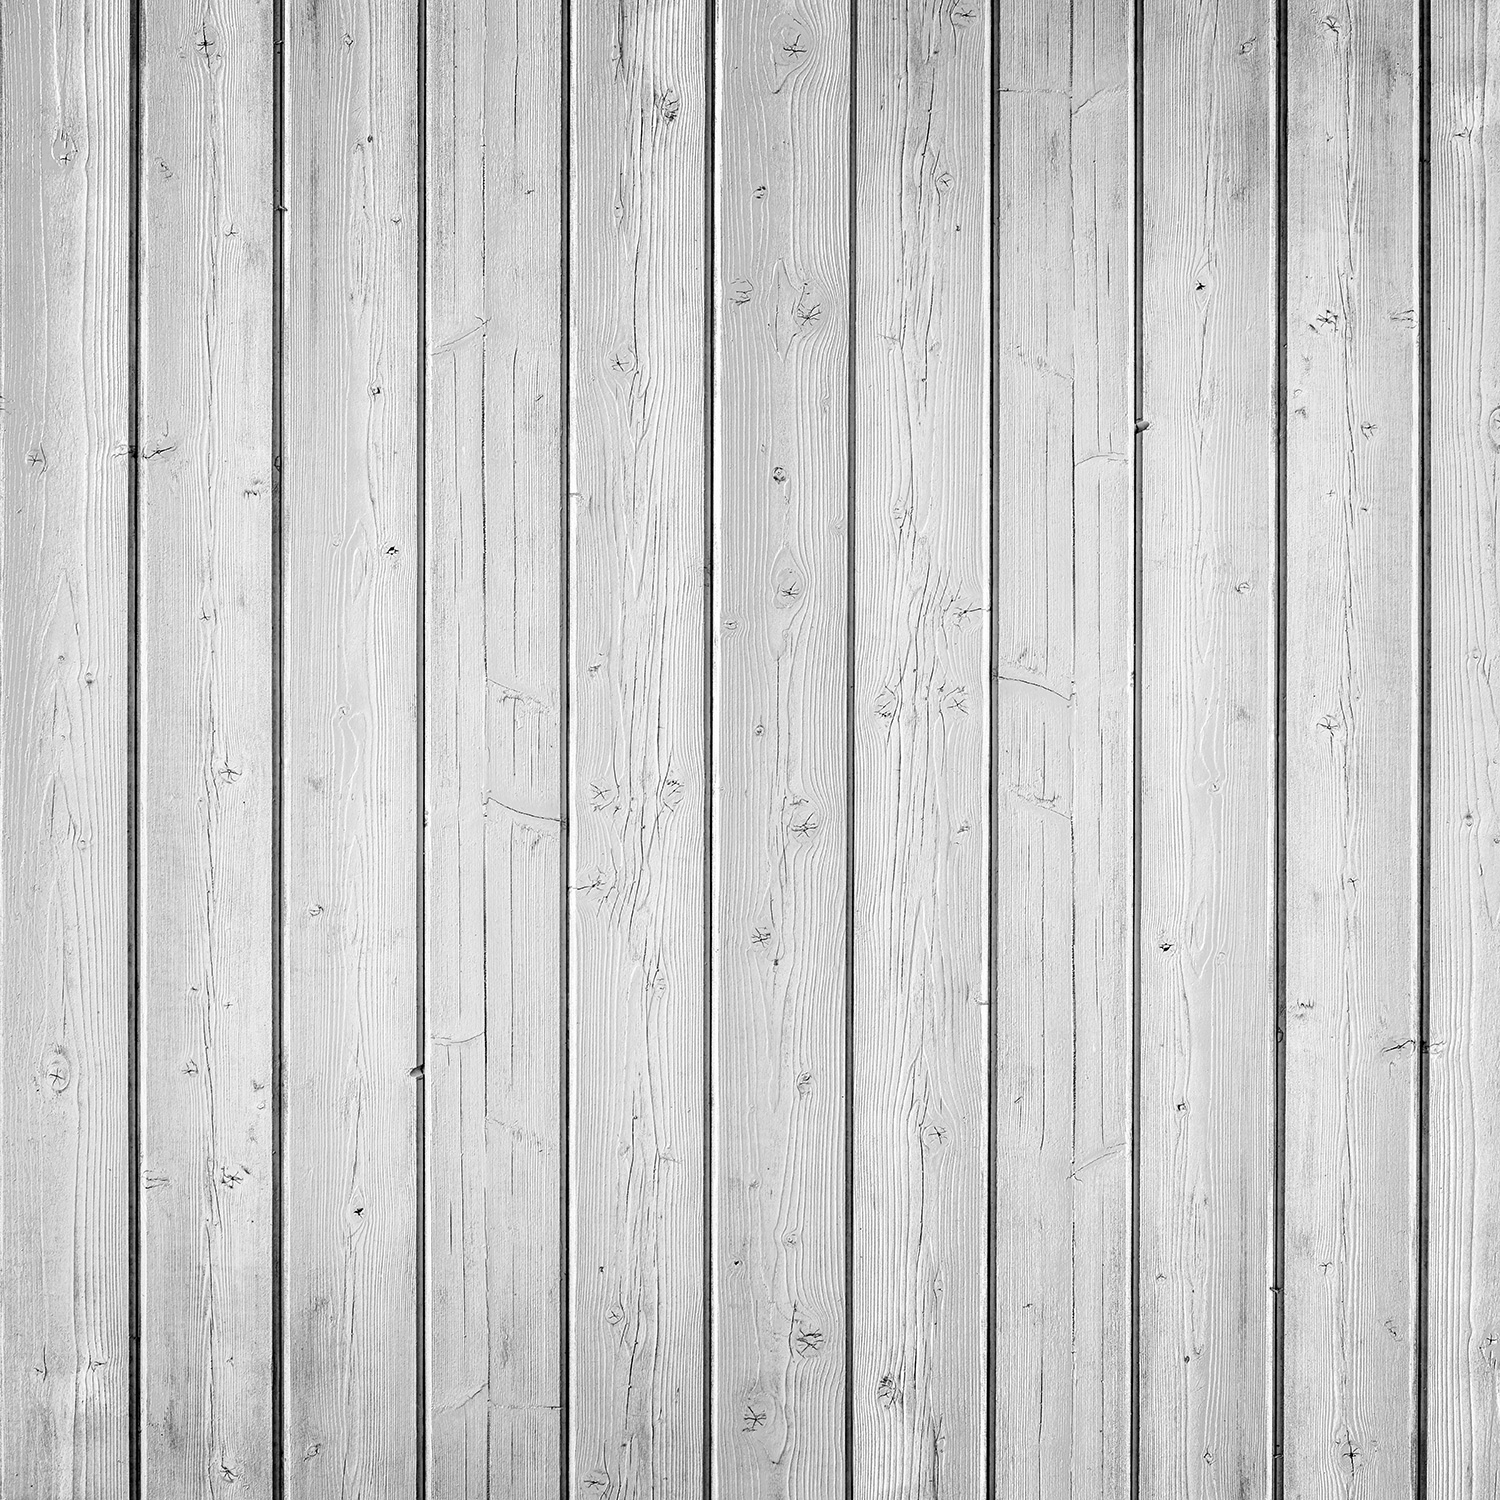 Narrow Planks Matte Vinyl Backdrop (3.5' x 3.5') -  Fresh White